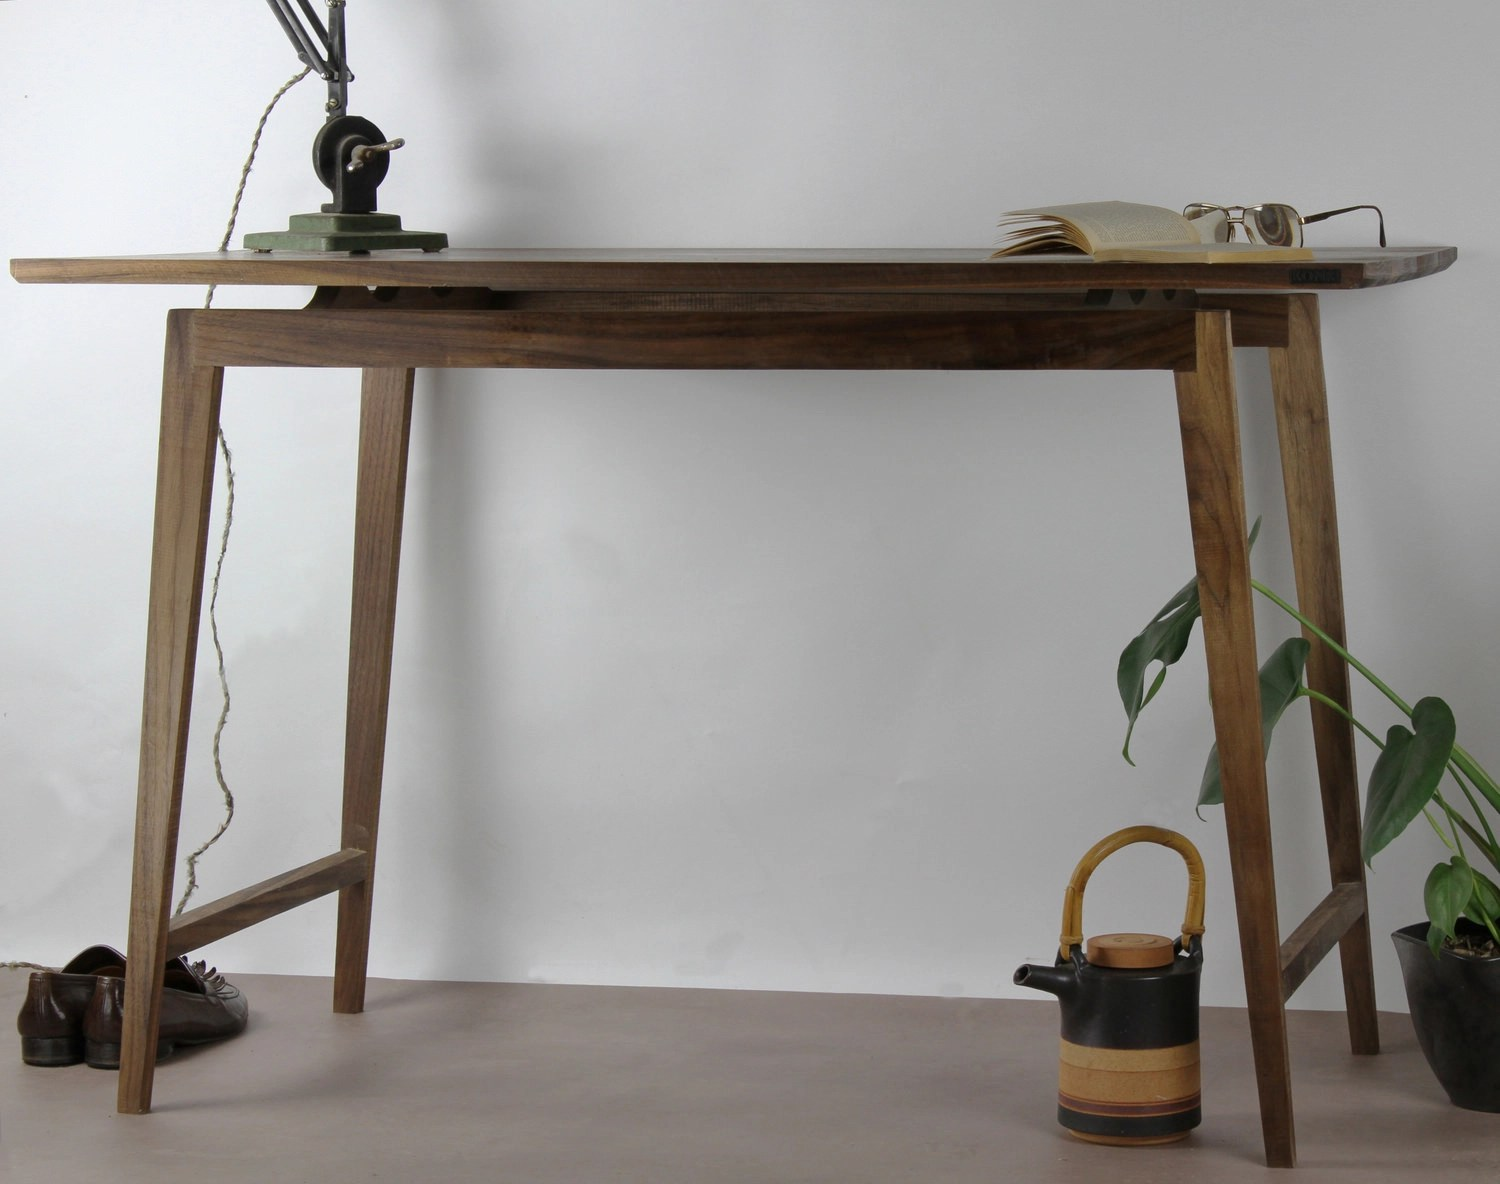 20 Handcrafted Industrial Furniture Designs Ideas